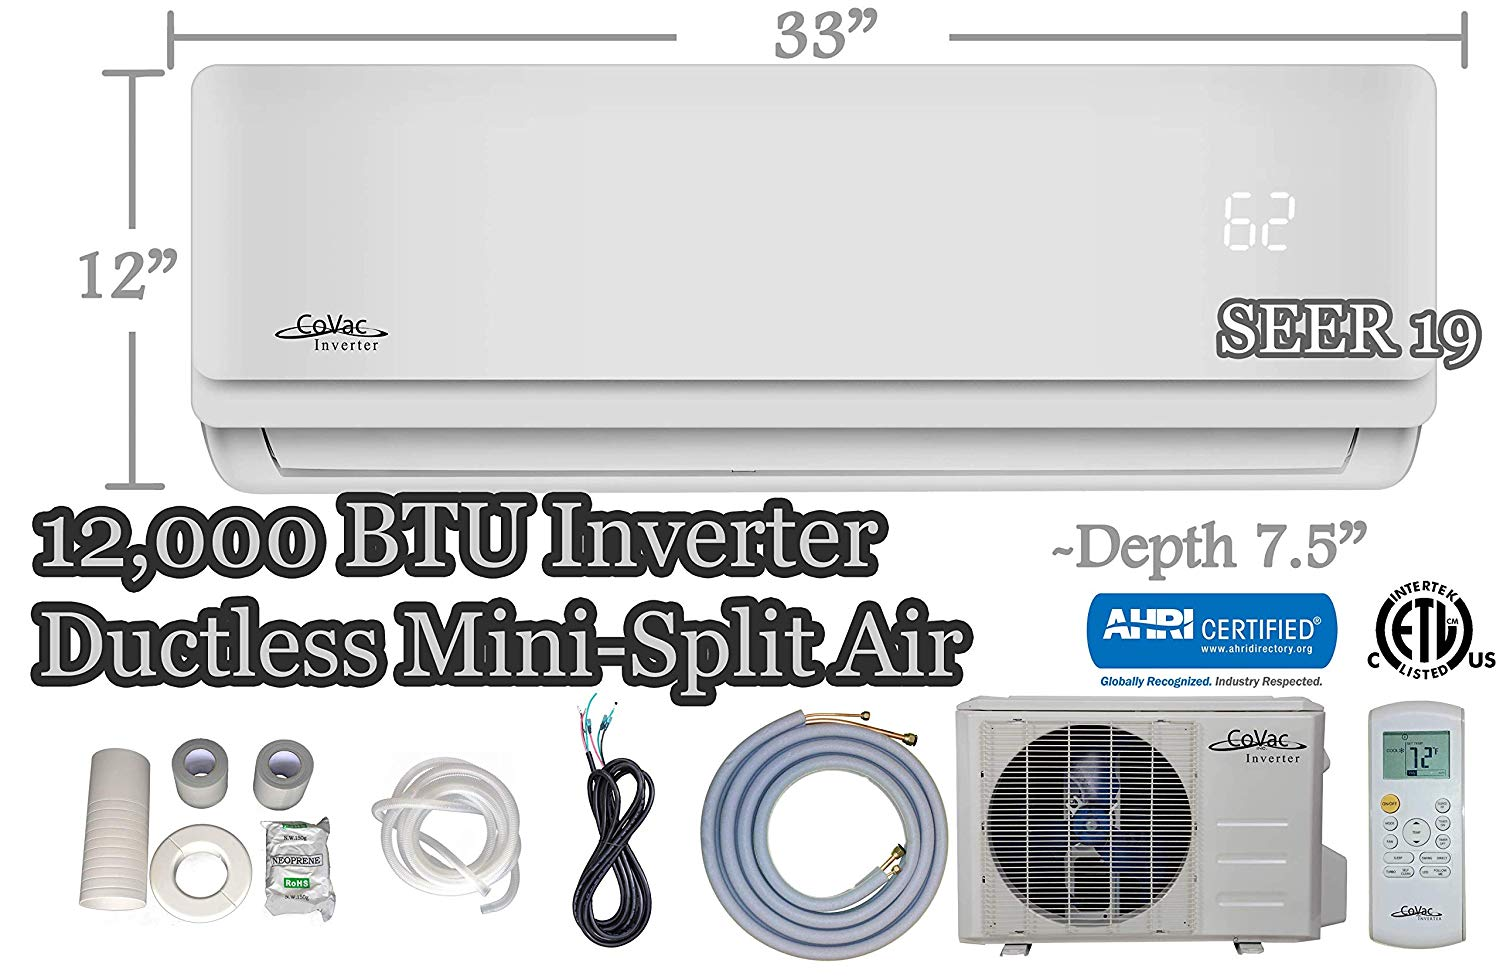 CoVac 12000 BTU Ductless Mini-Split Air Conditioner- Inverter SEER 19- Cooling & Heating